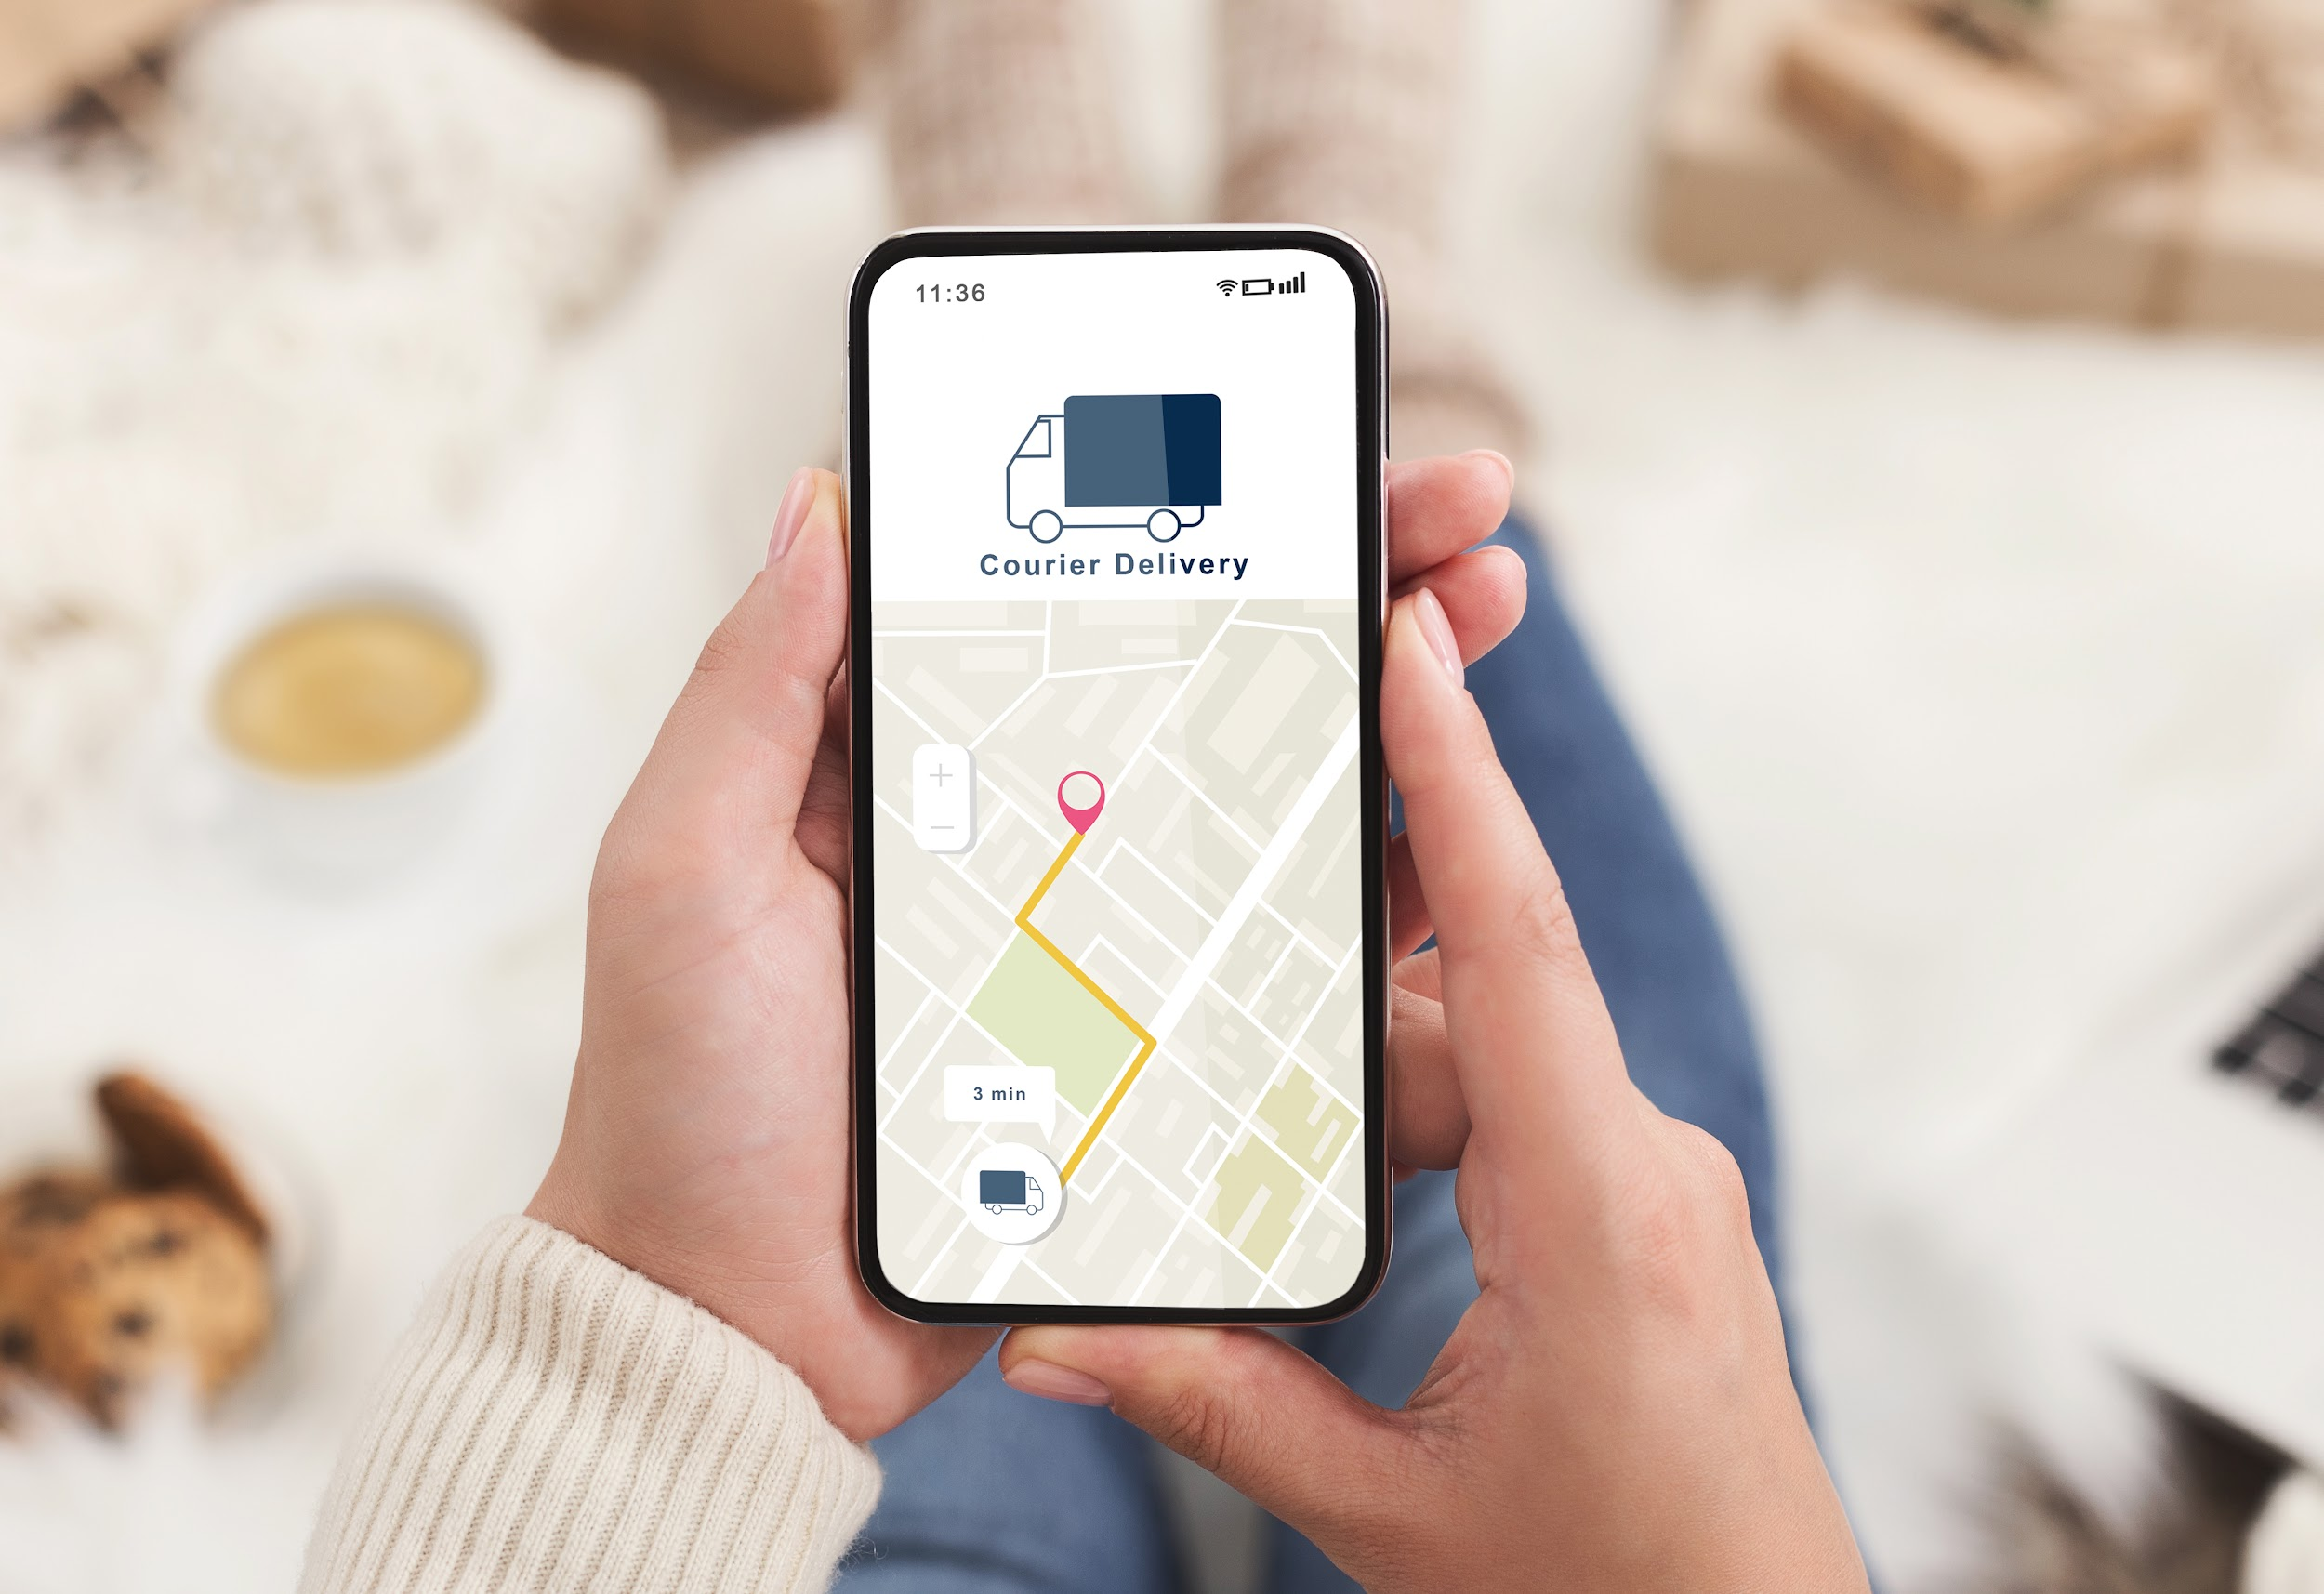 Modern courier delivery at home, shopogolic and online shopping. Hands of lady holding smartphone with mobile app and map to track the order on digital screen on blurred background, collage, cropped